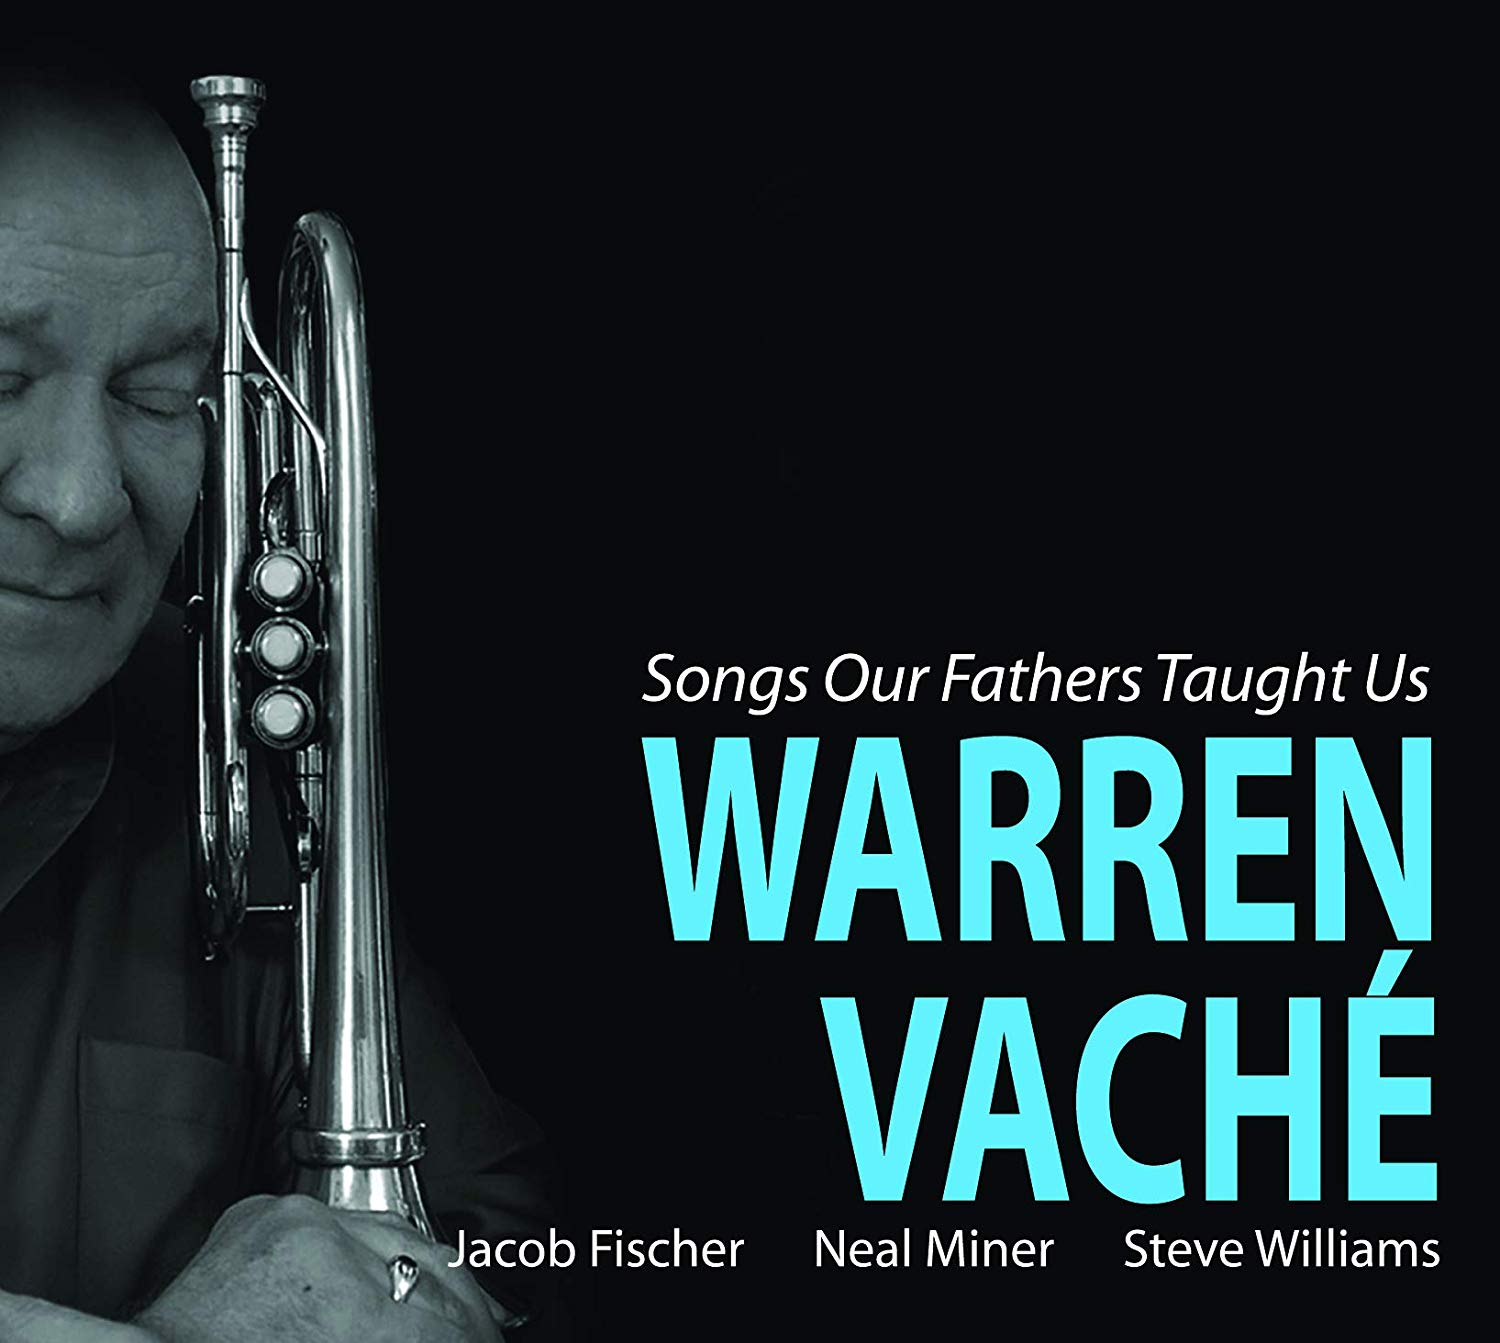 WARREN VACHÉ - Songs Our Fathers Taught Us cover